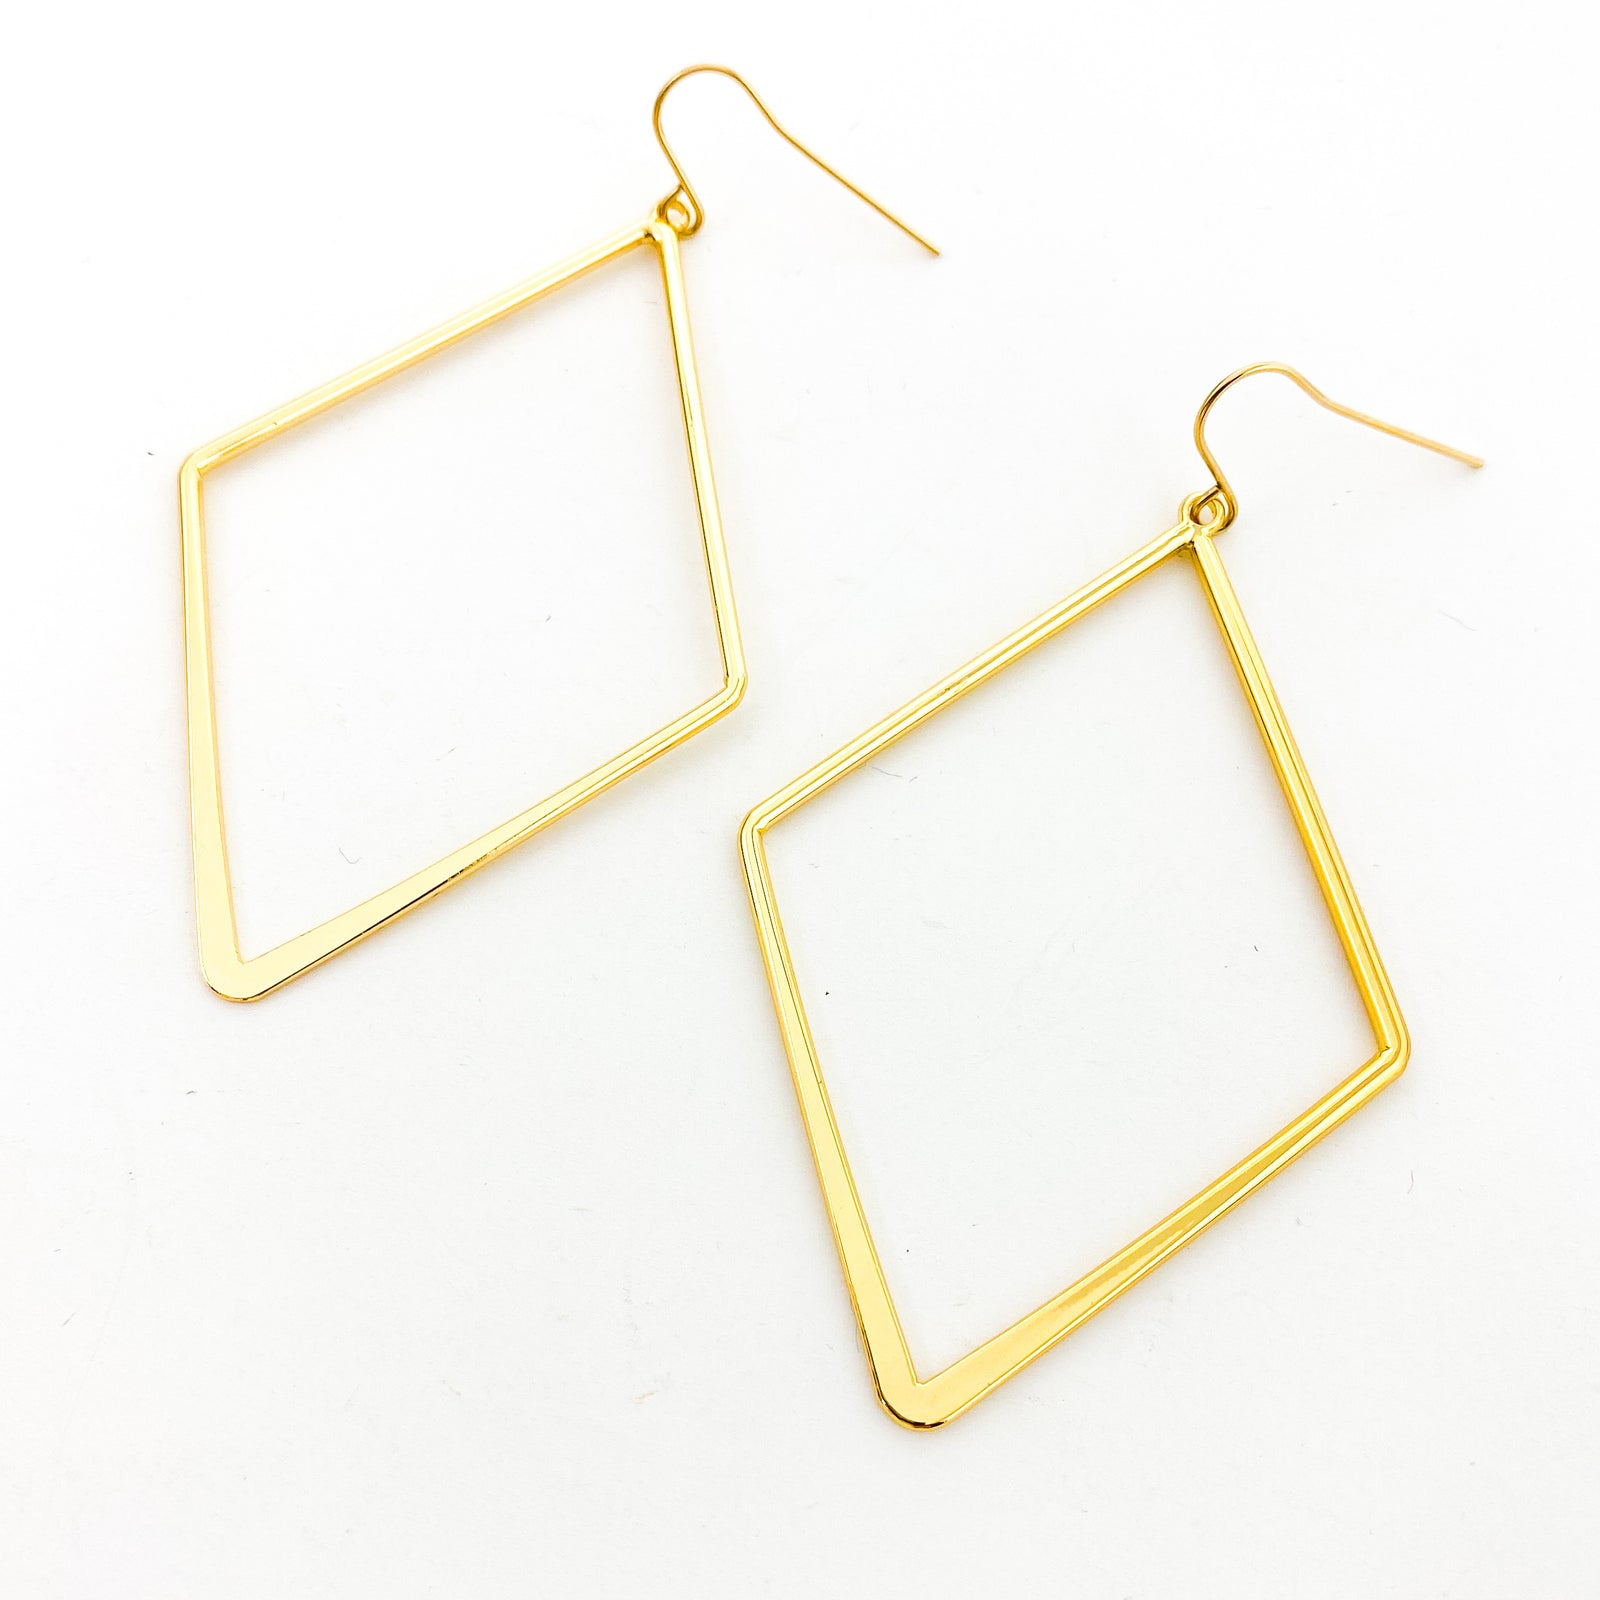 LARGE SMOOTH DIAMOND SHAPE EARRINGS | 14K GOLD-FILLED